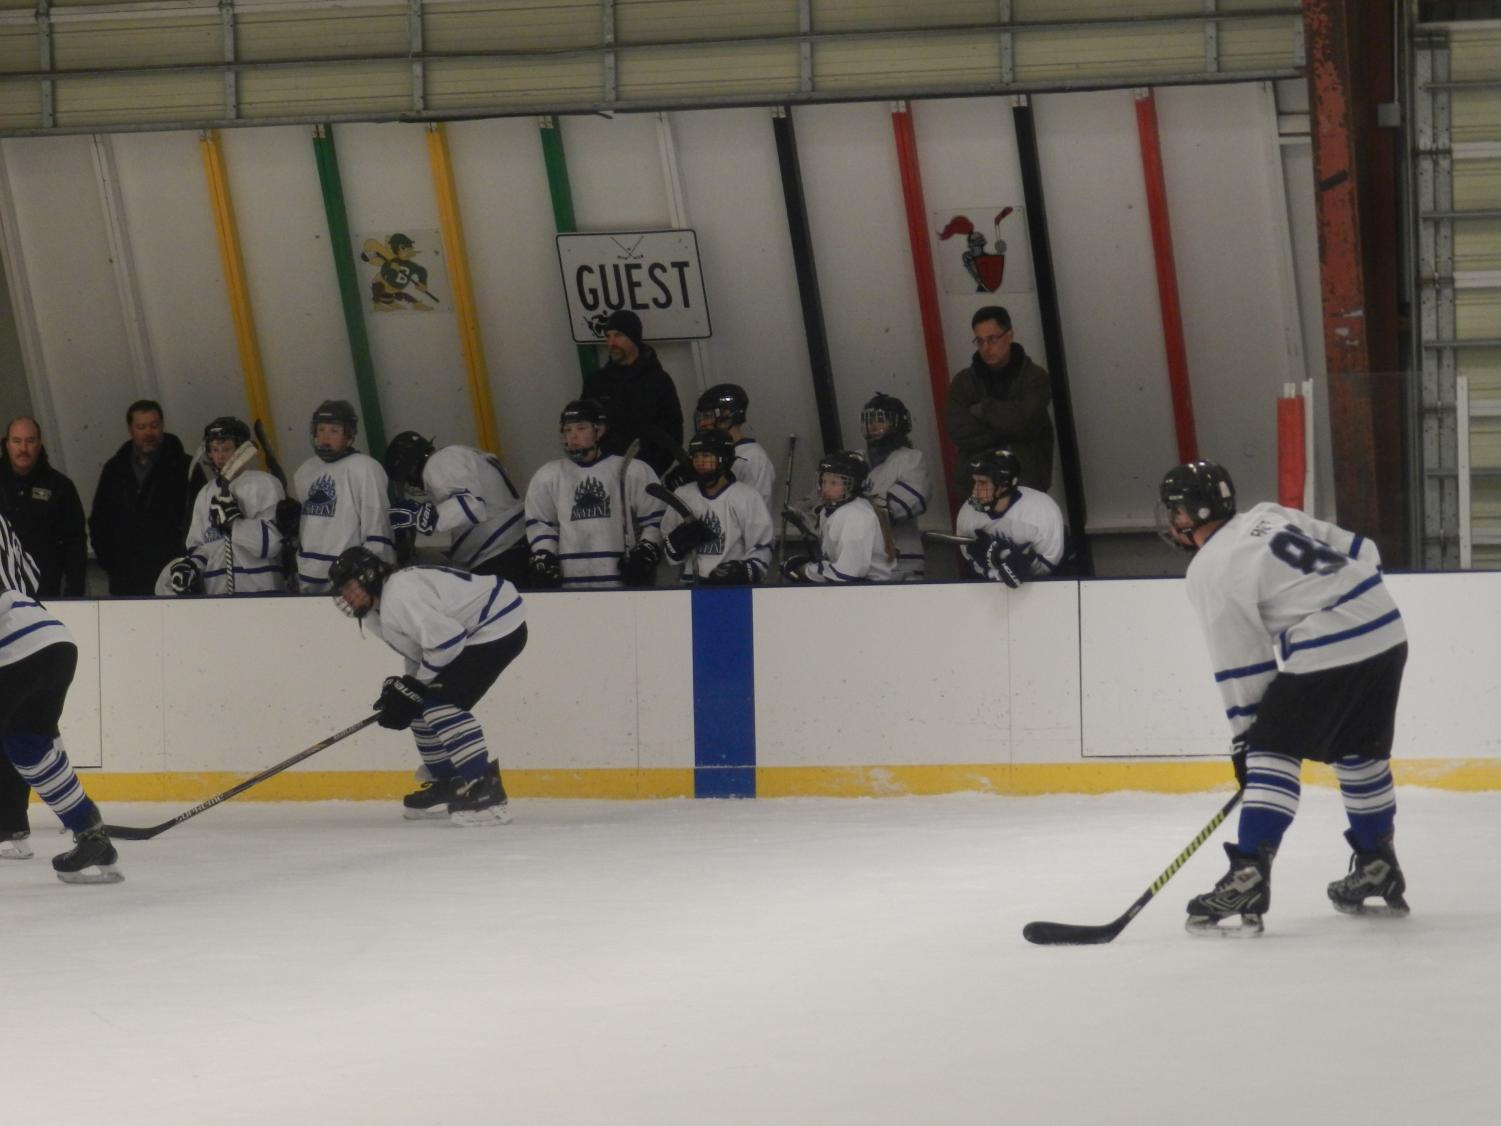 Grizzles on ice!